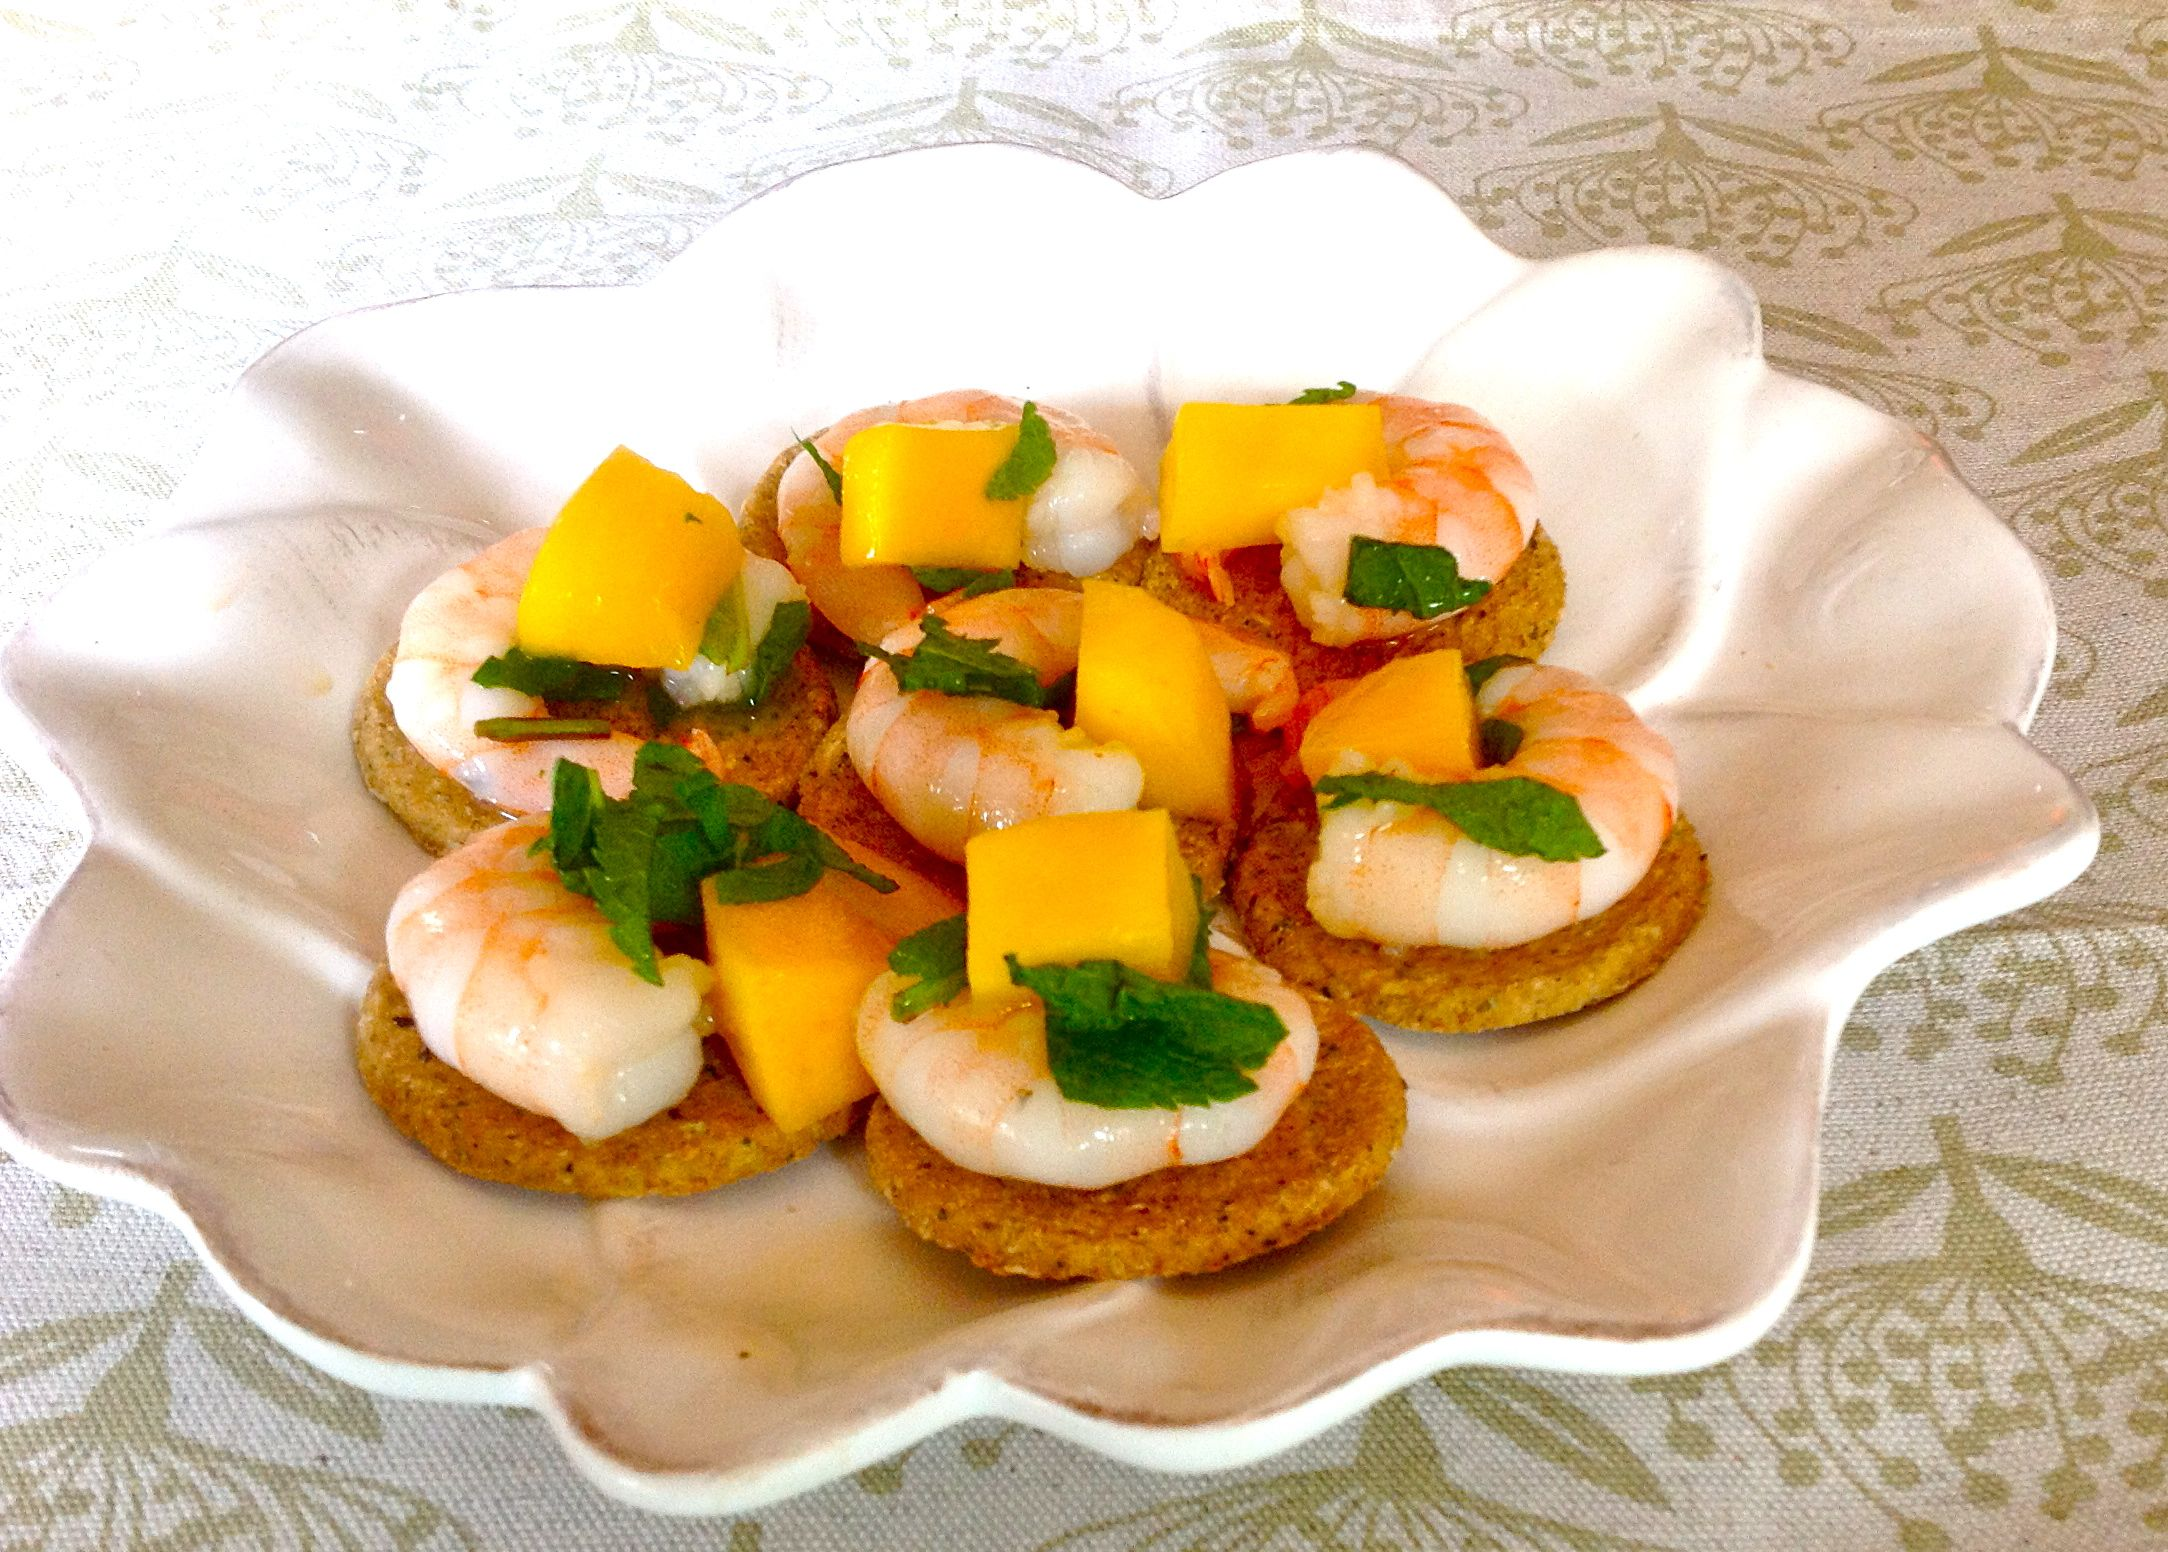 Recipes really easy ideas for canapes eating covent garden for What is a canape appetizer